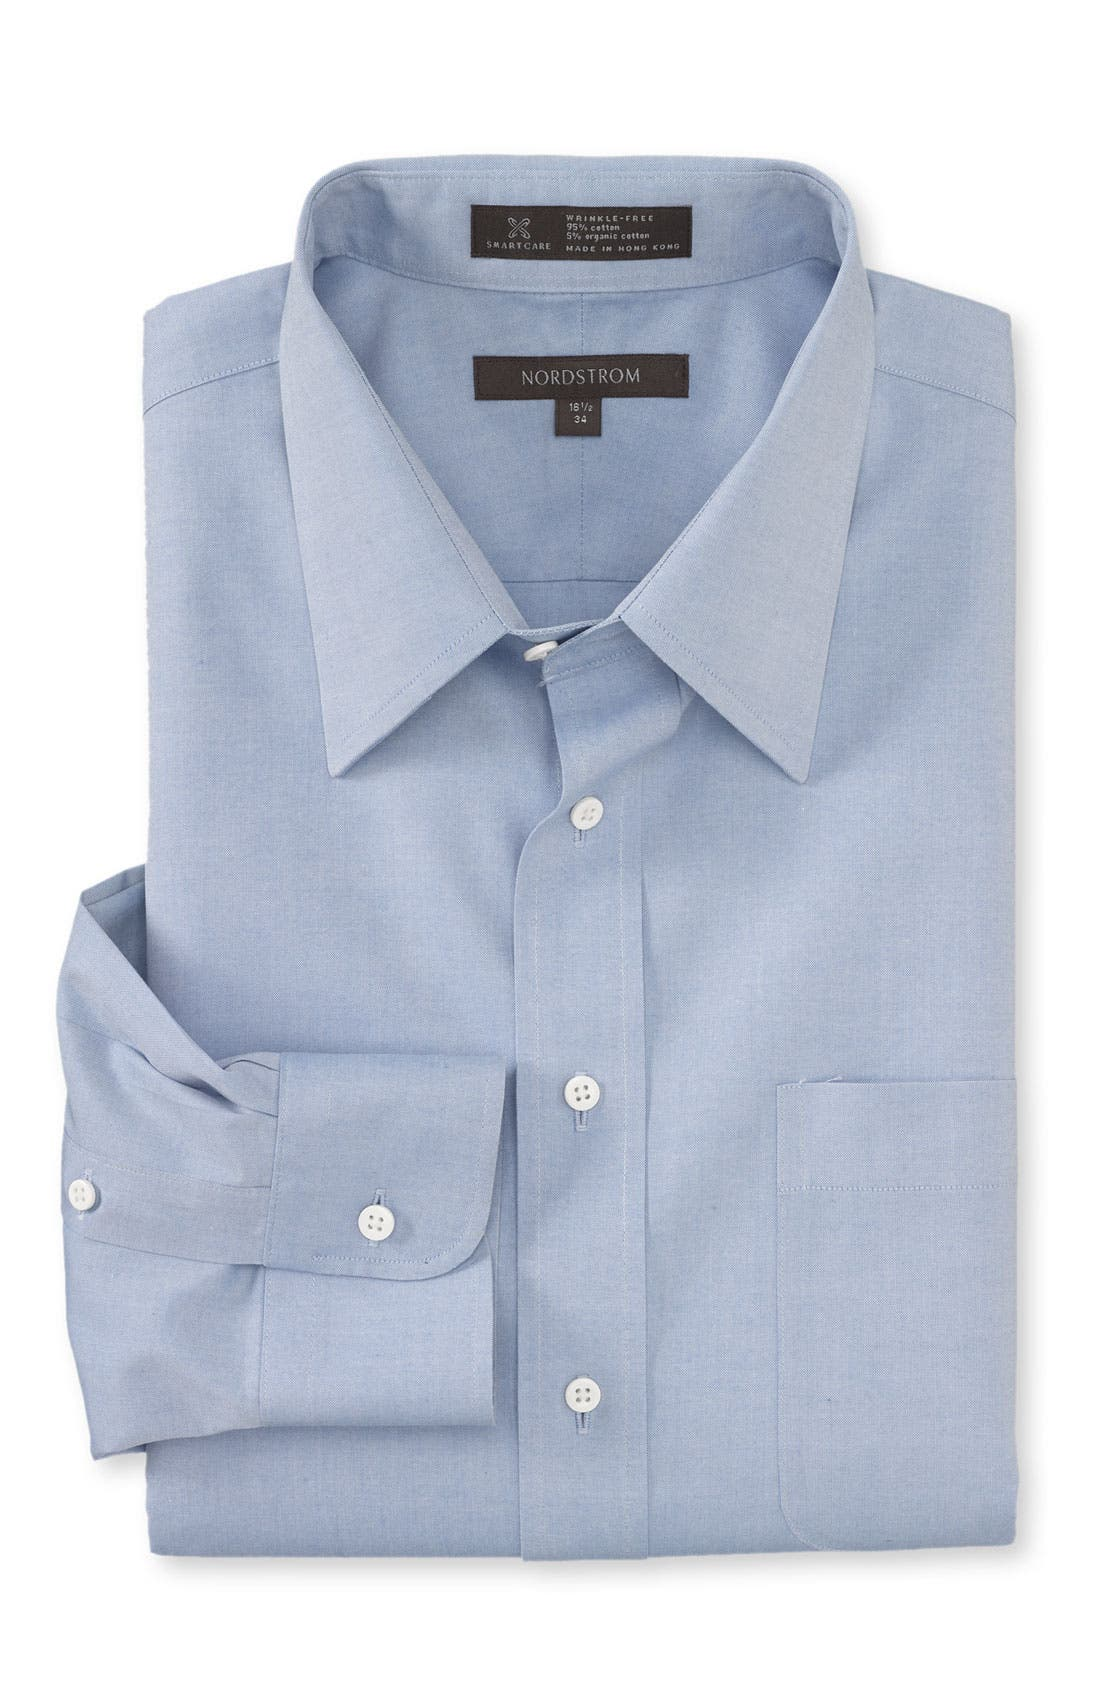 Main Image - Nordstrom Smartcare™ Classic Fit Pinpoint Dress Shirt